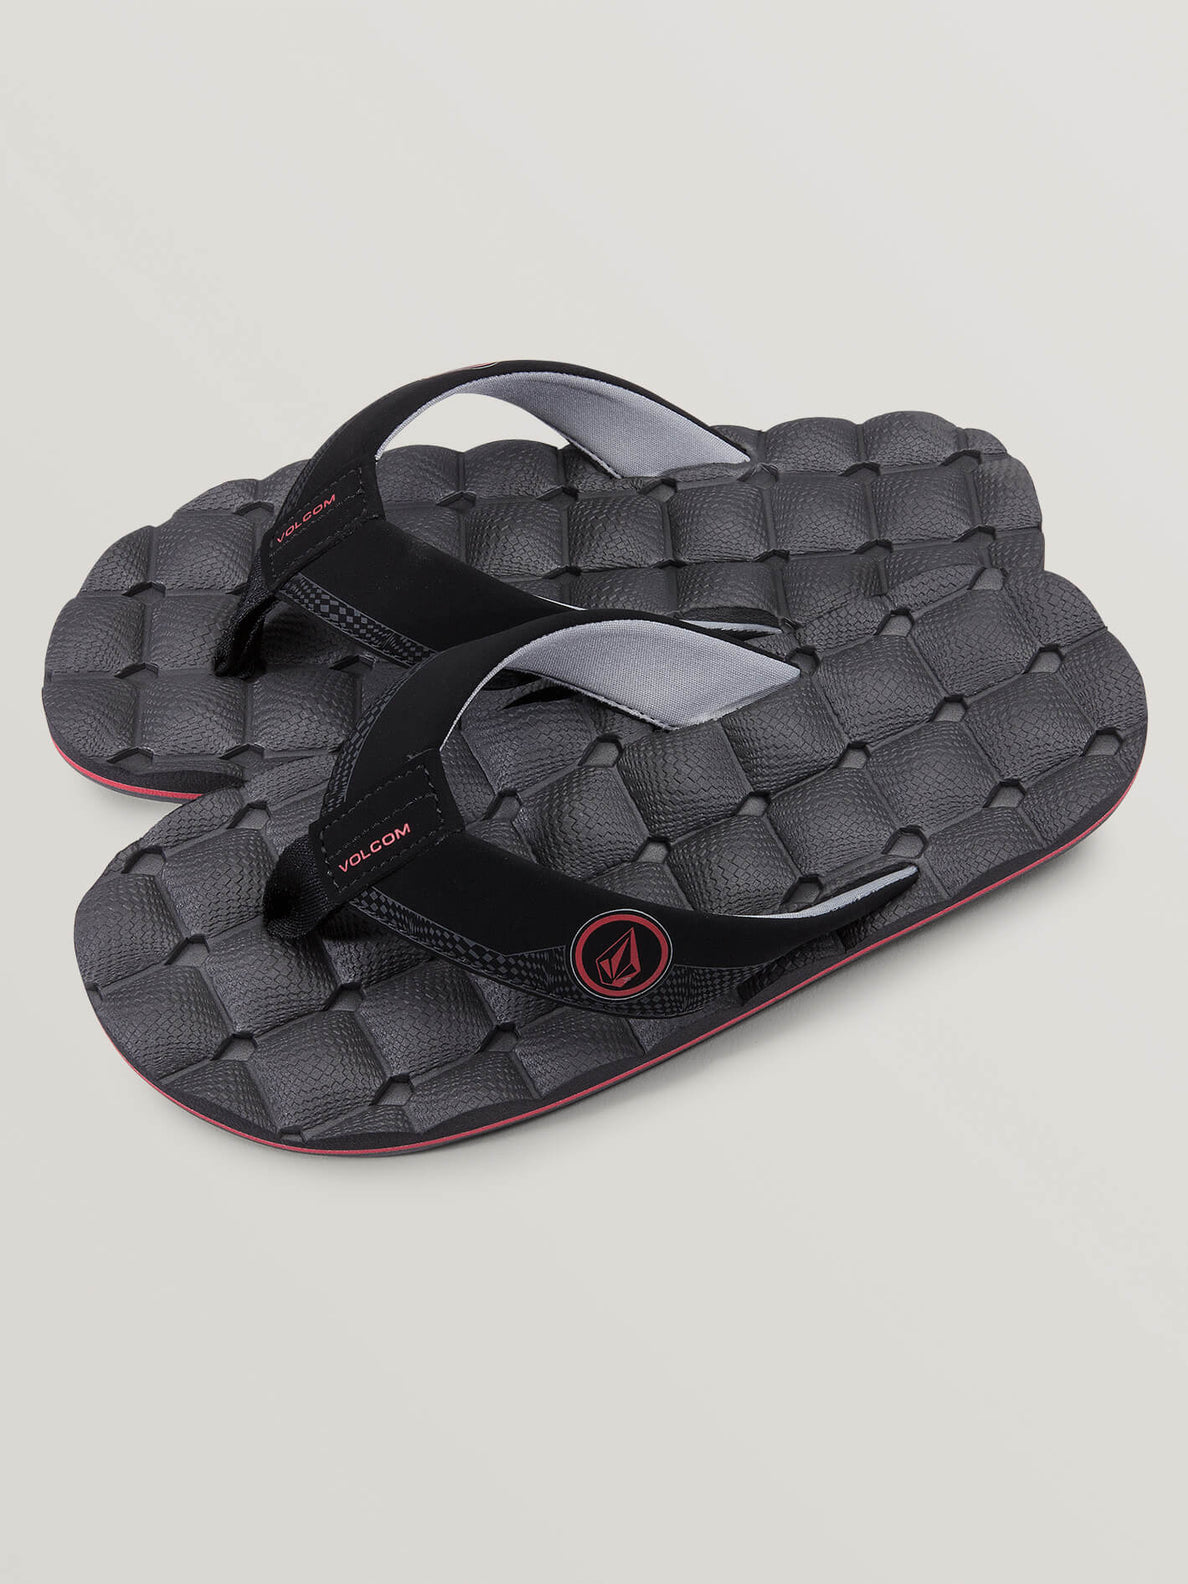 Big Boys Recliner Sandals In Graphite, Front View